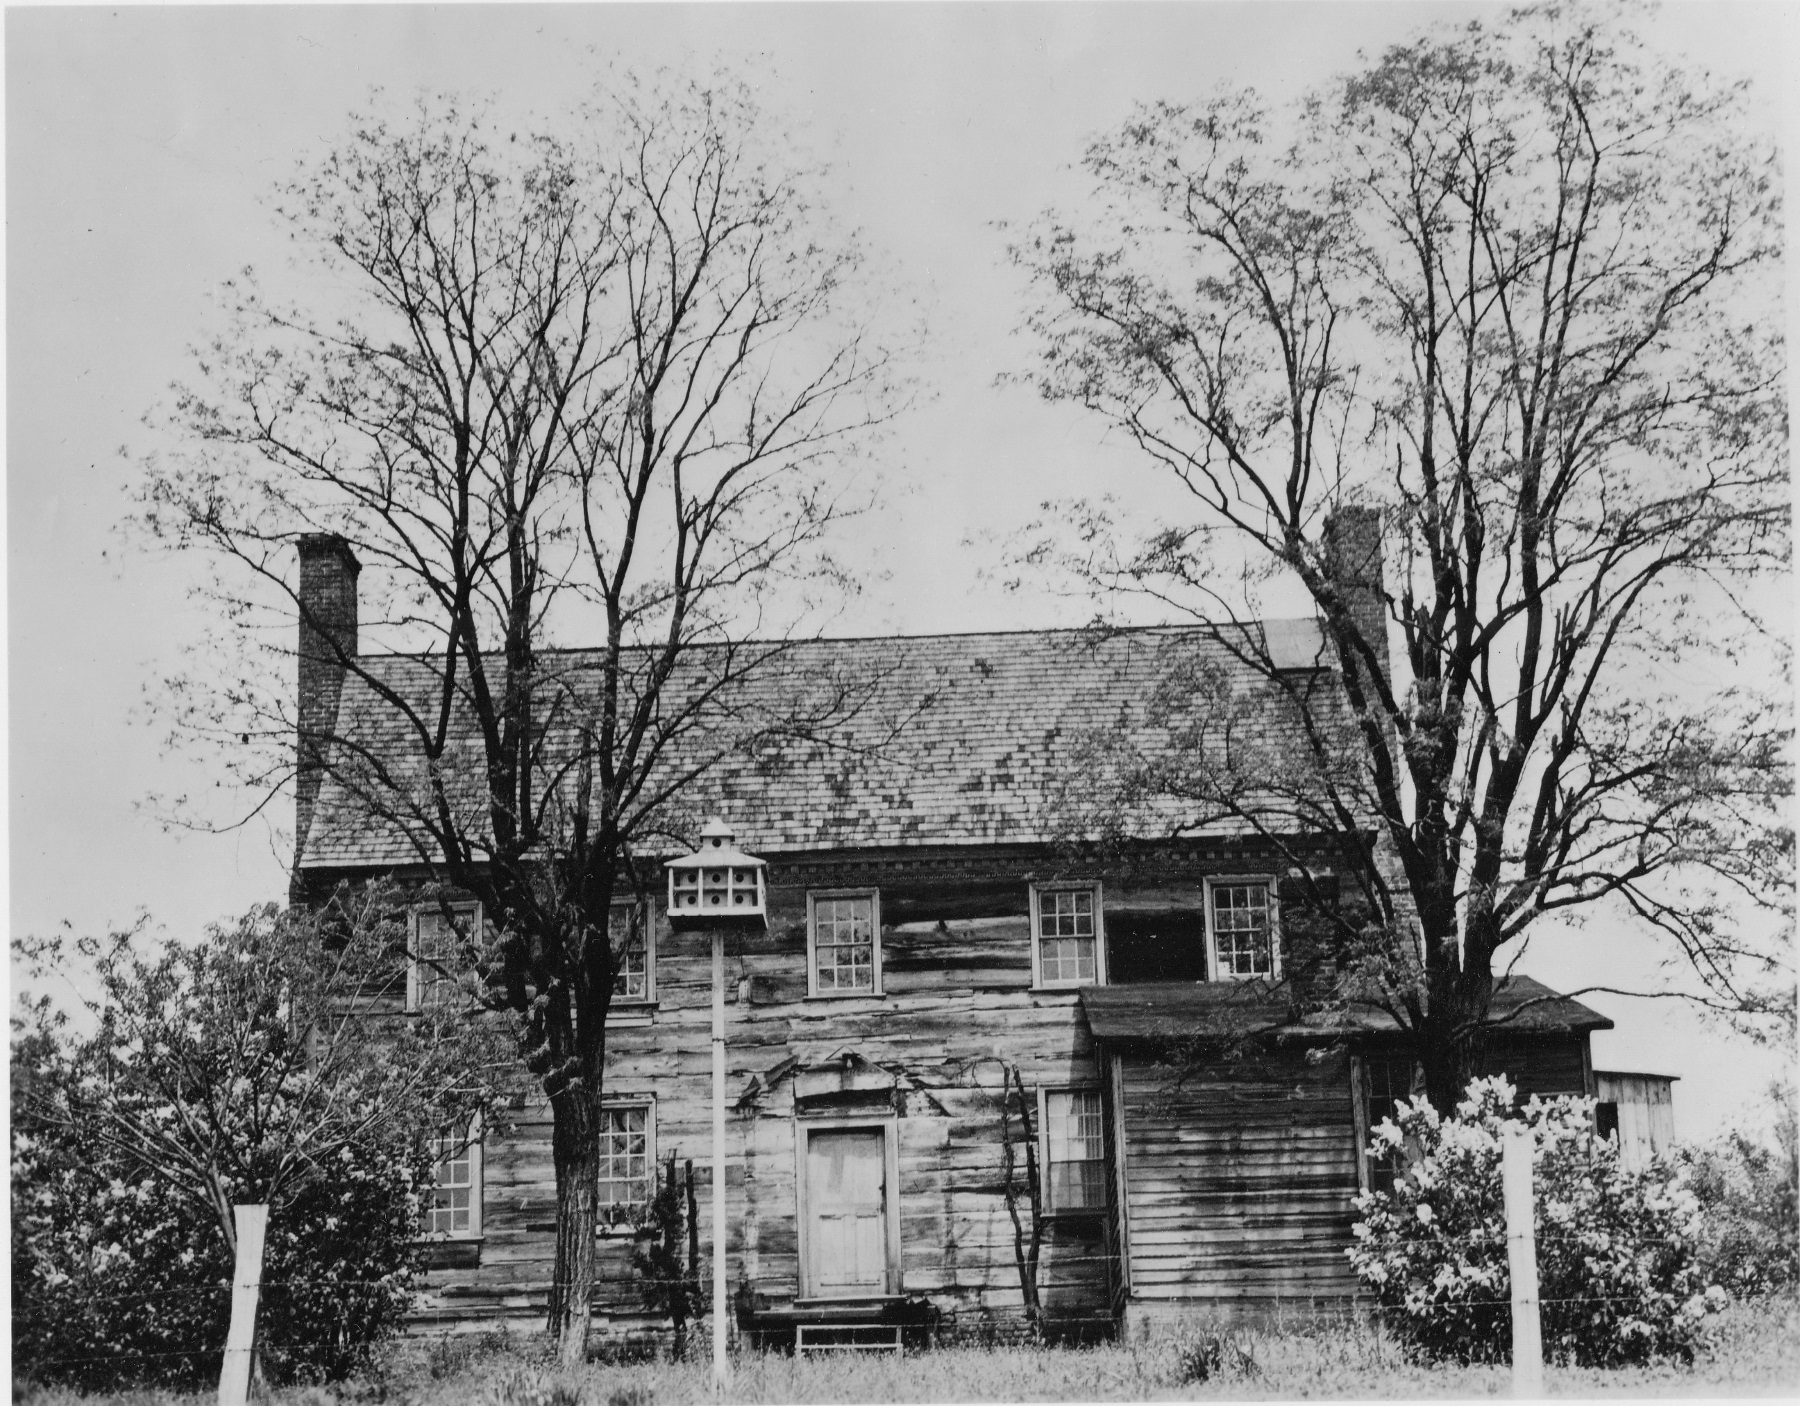 Retirement before Benjamin Cohen's renovations in the early to mid 1940s